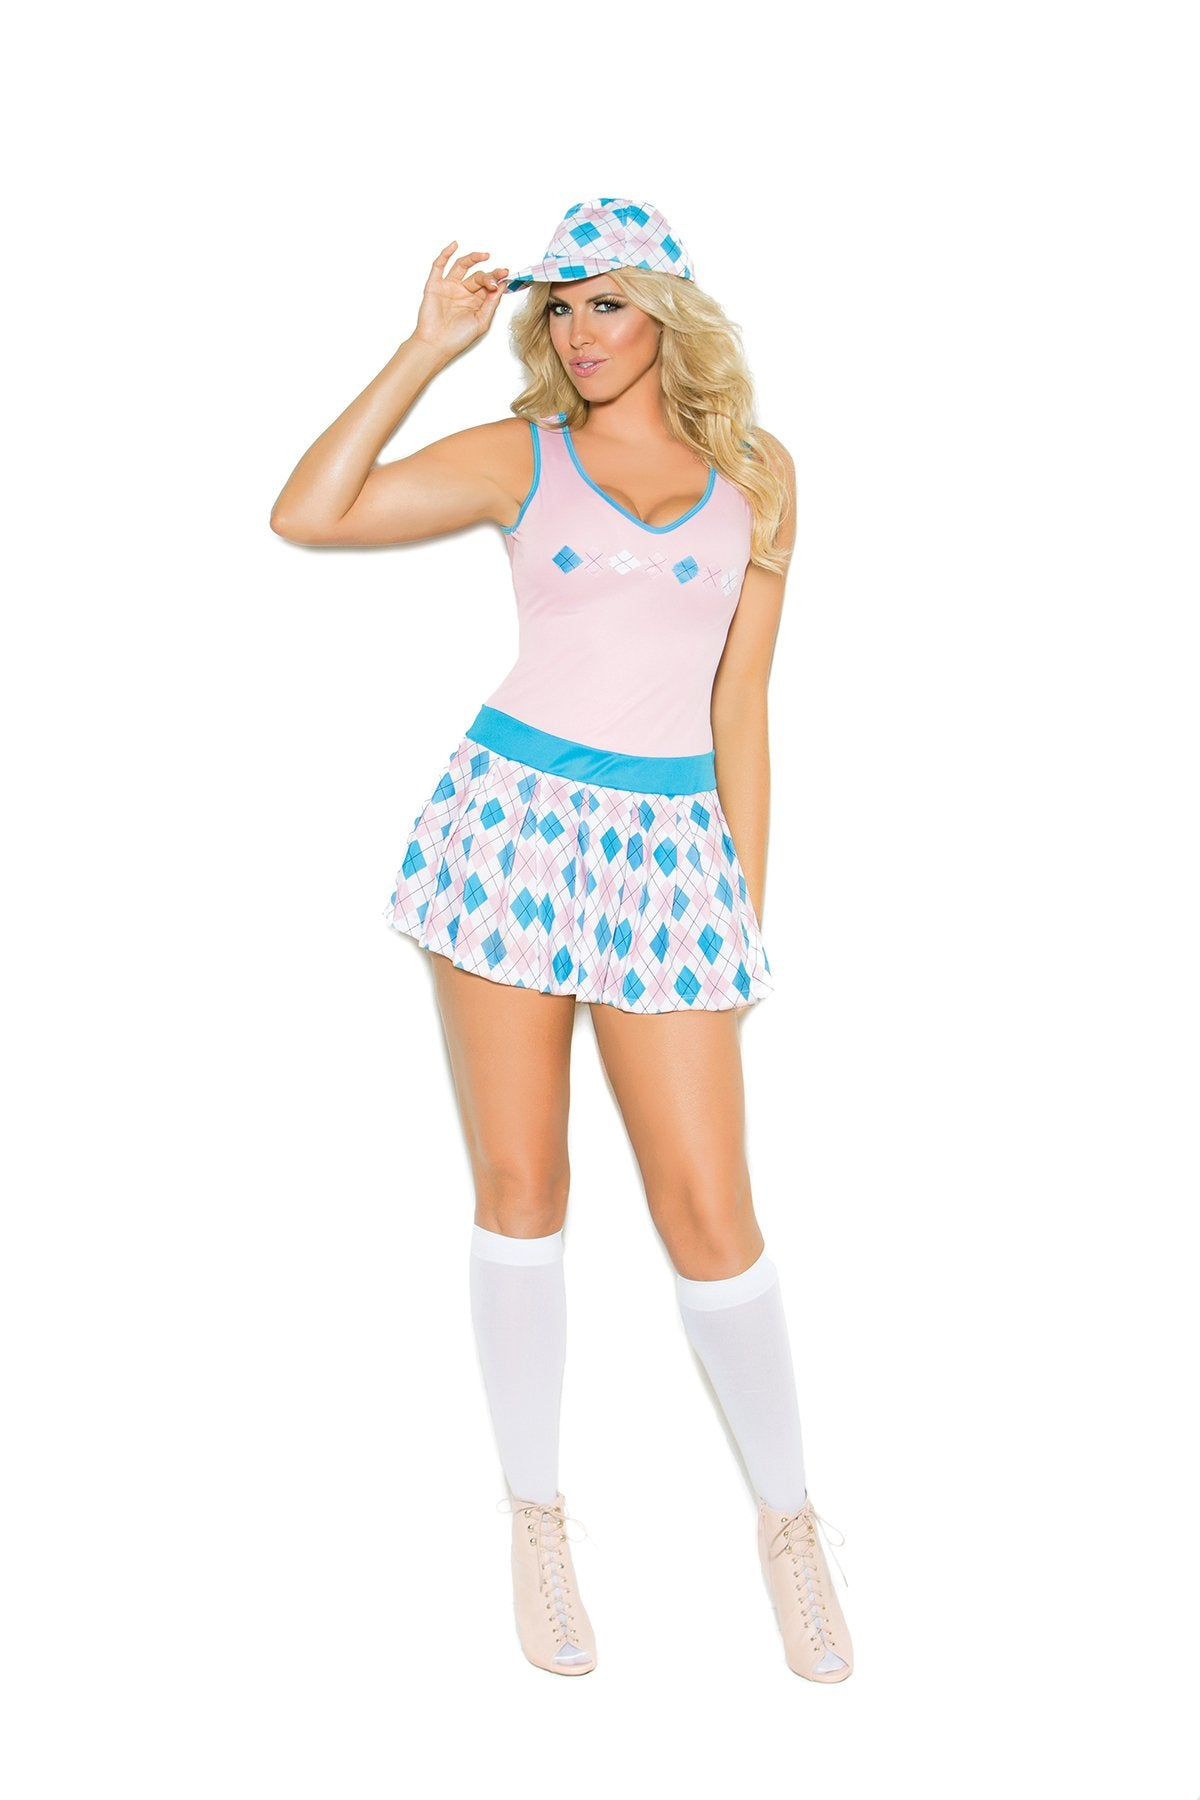 Golf Tease Costume-costumes-Elegant Moments-large-pink-Nakees